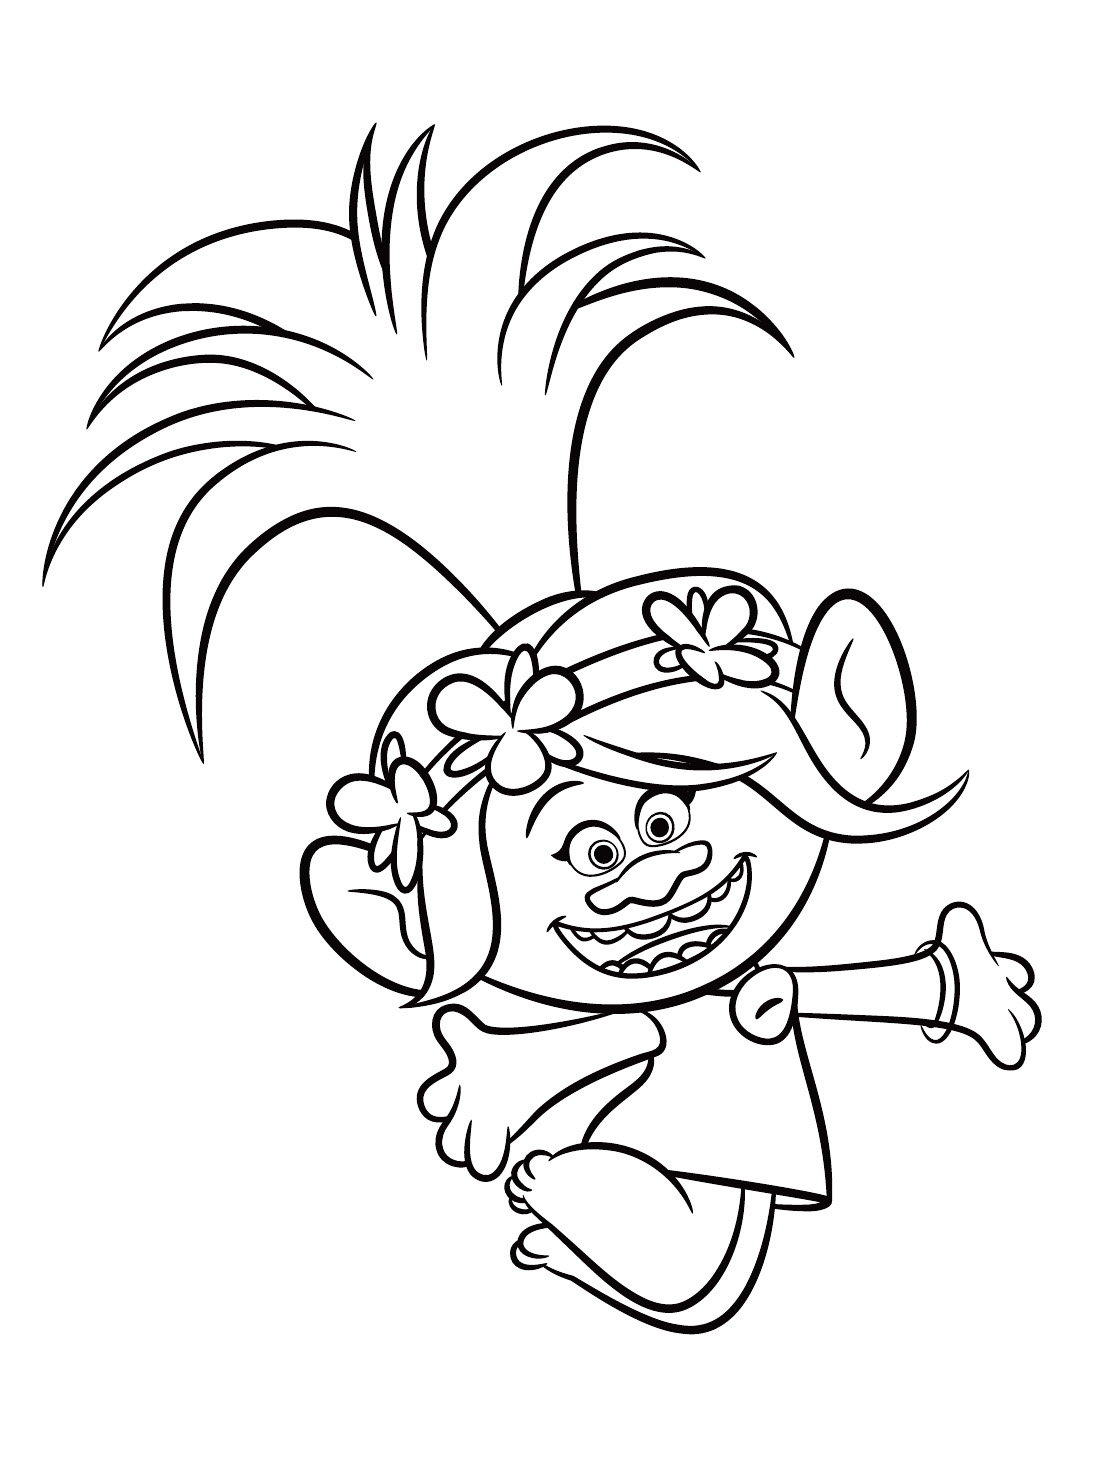 Branch trolls movie pages coloring pages for Branch trolls coloring pages